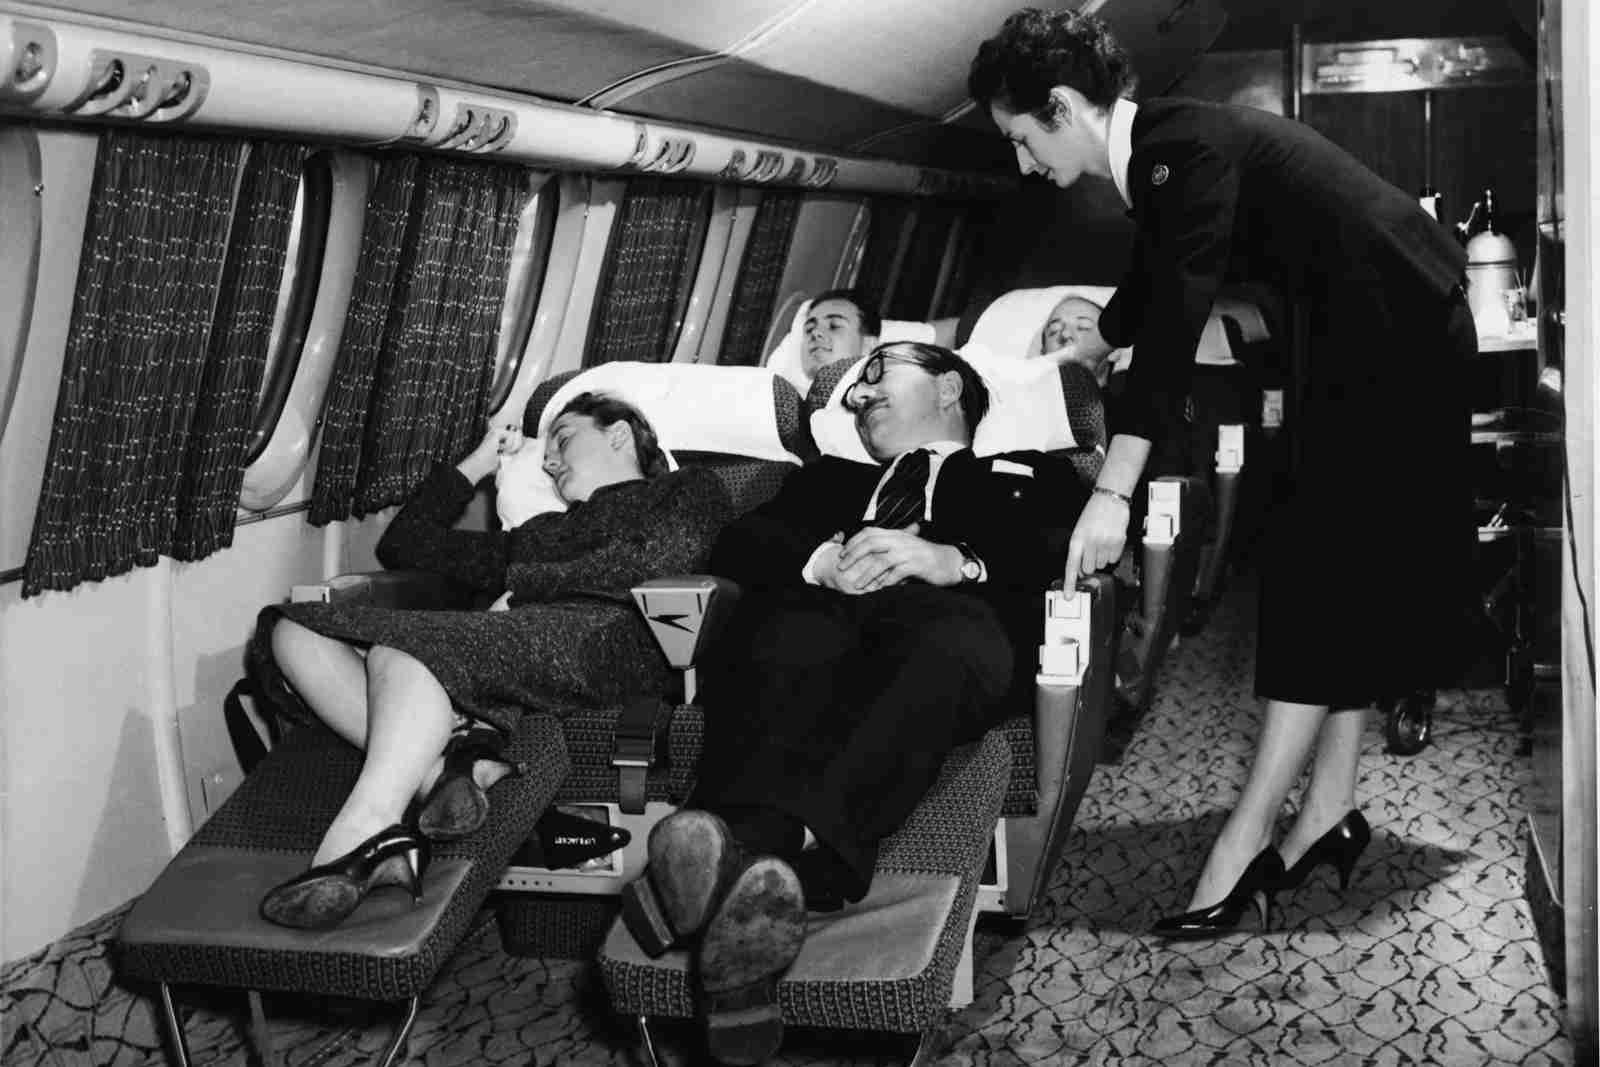 The first class compartment of a commercial passenger plane in the 1950s. (Photo by Authenticated News/Getty Images)